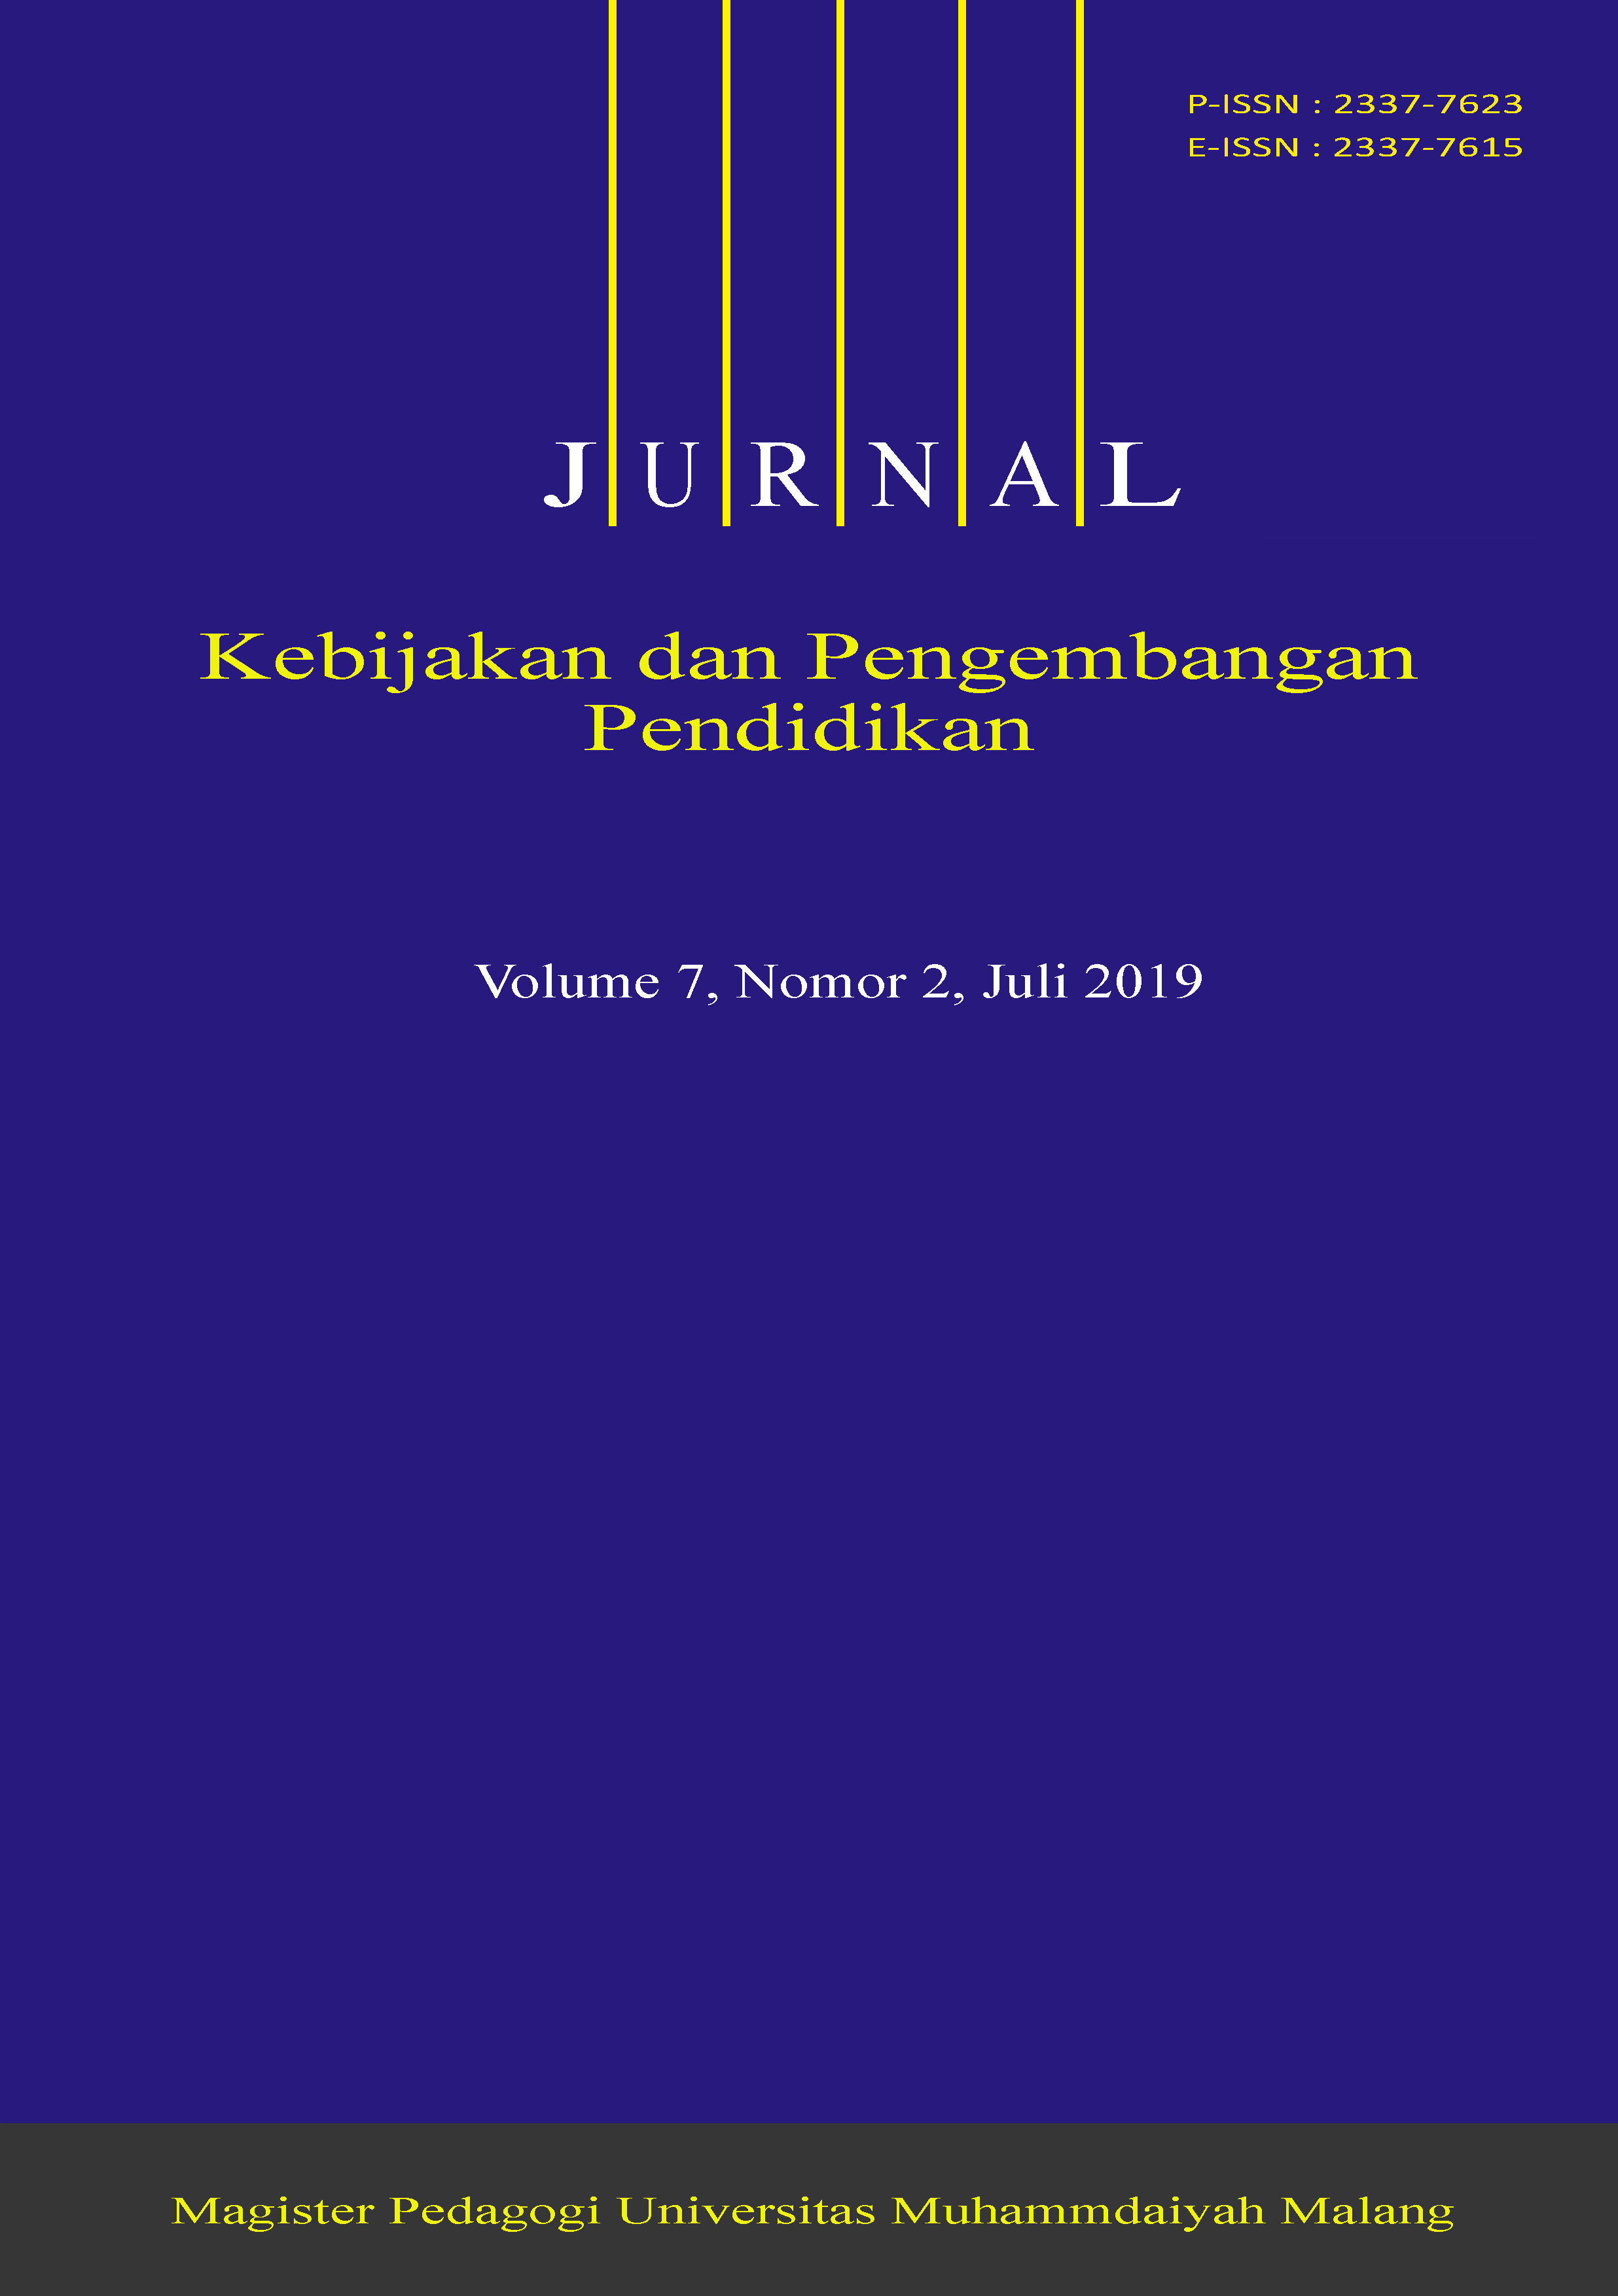 Cover Jurnal